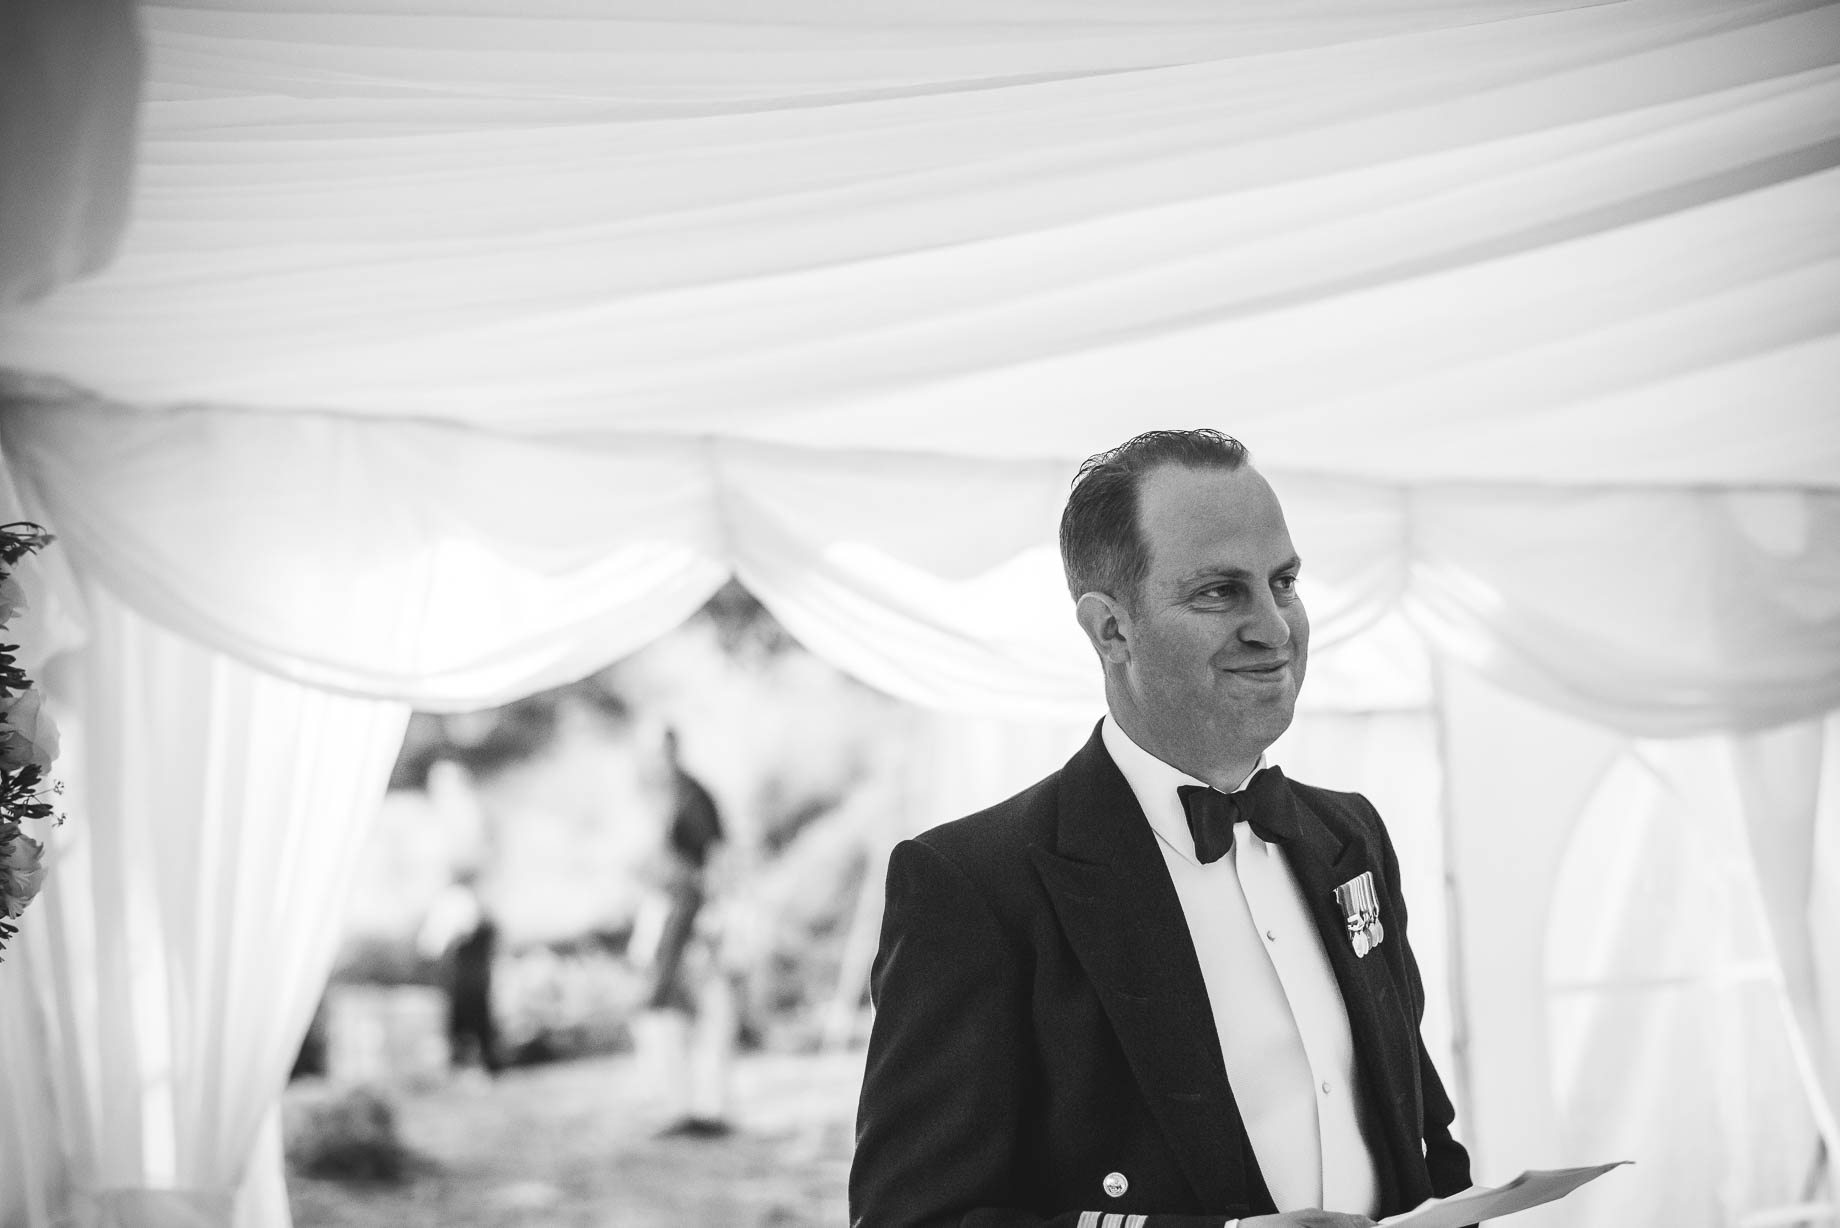 Hampshire wedding photography - Emily and Rob - Guy Collier Photography (157 of 192)